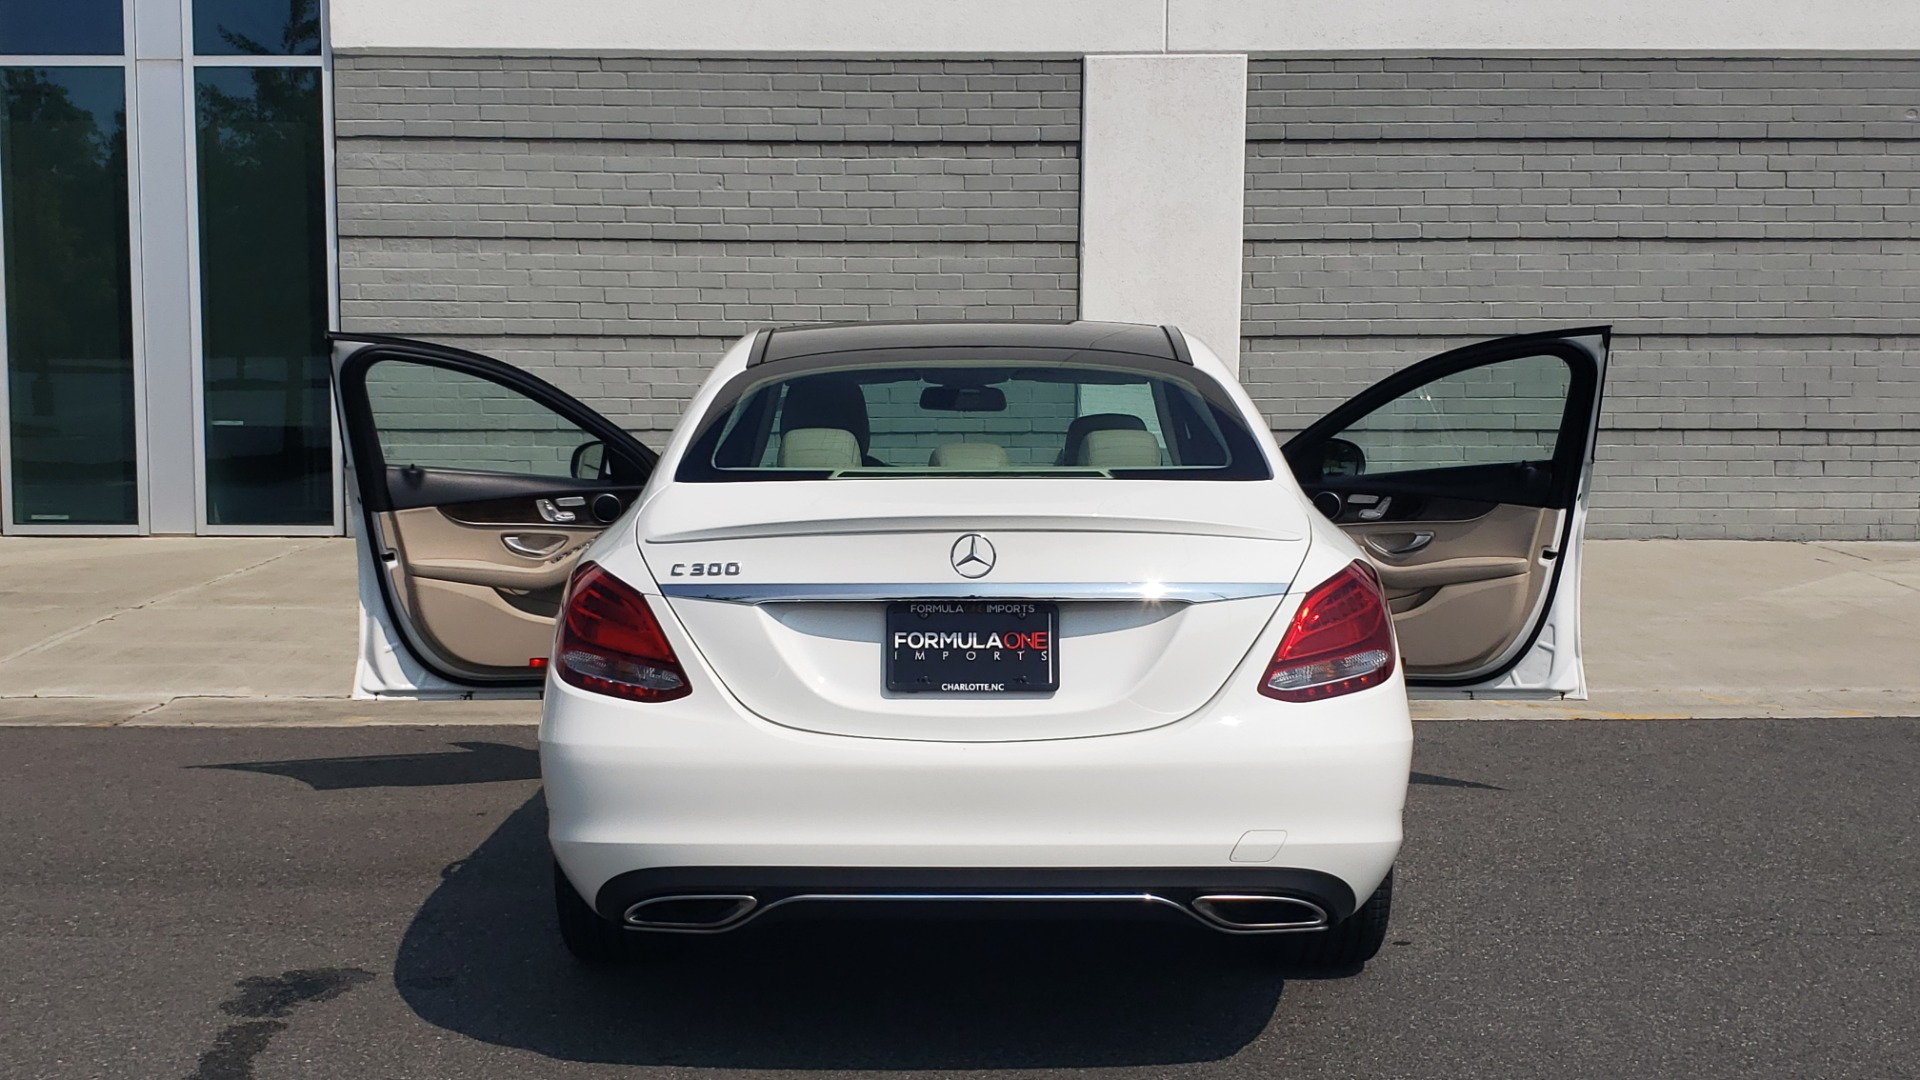 Used 2018 Mercedes-Benz C-CLASS C 300 PREMIUM / KEYLESS-GO / APPLE / PANO-ROOF / REARVIEW for sale $28,295 at Formula Imports in Charlotte NC 28227 26